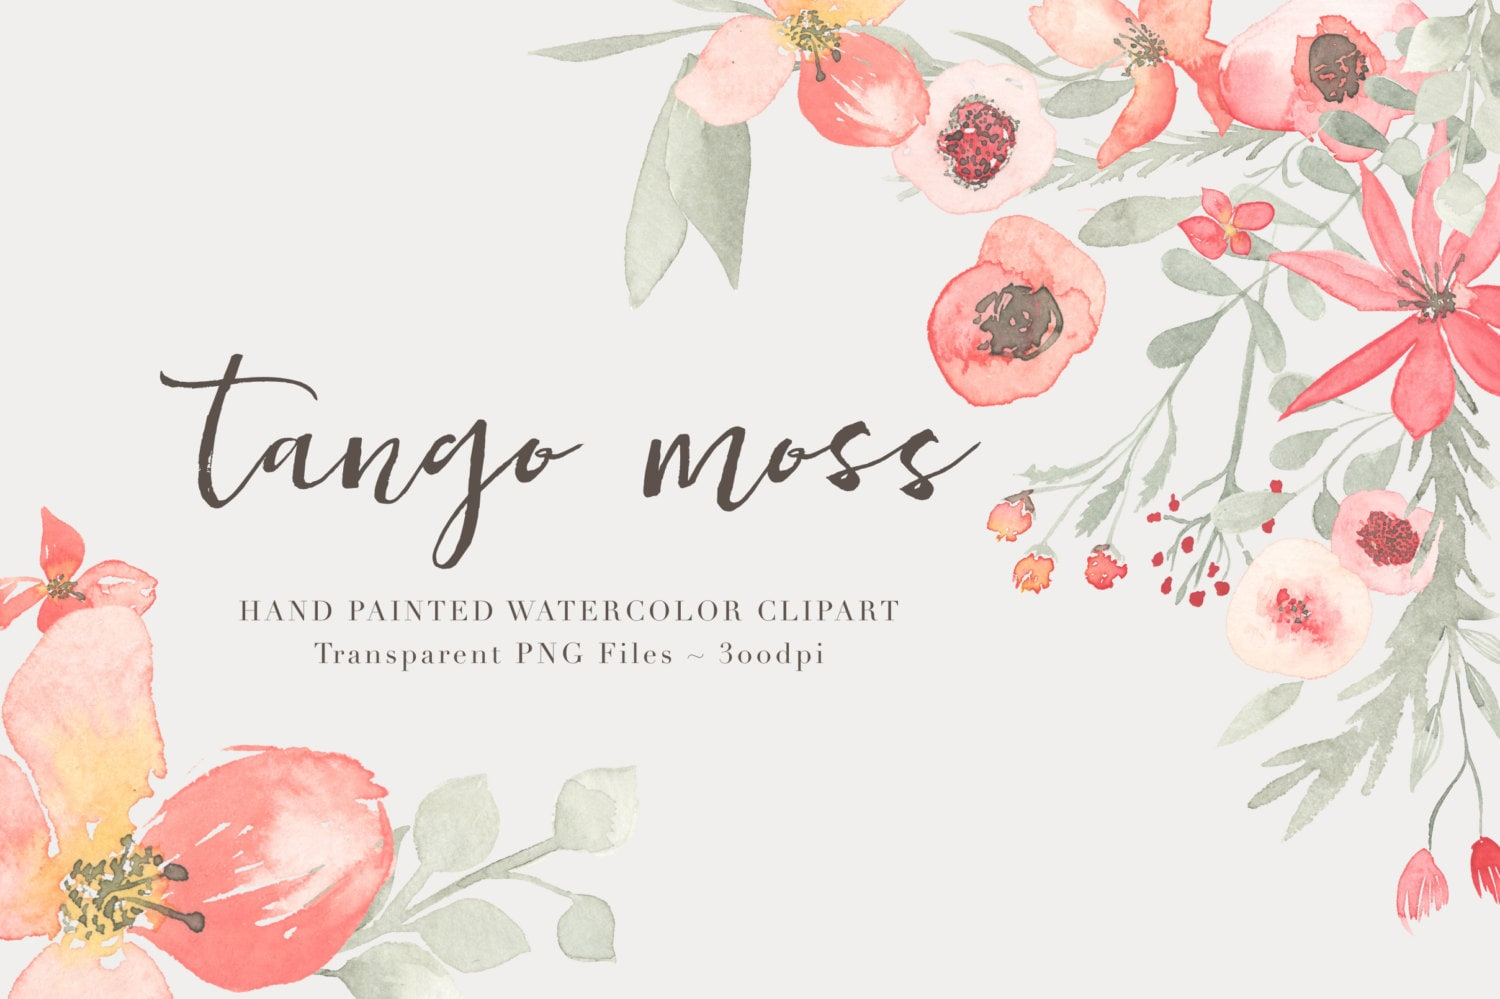 Tango watercolor flowers clipart files high res transparent - High resolution watercolor flowers ...